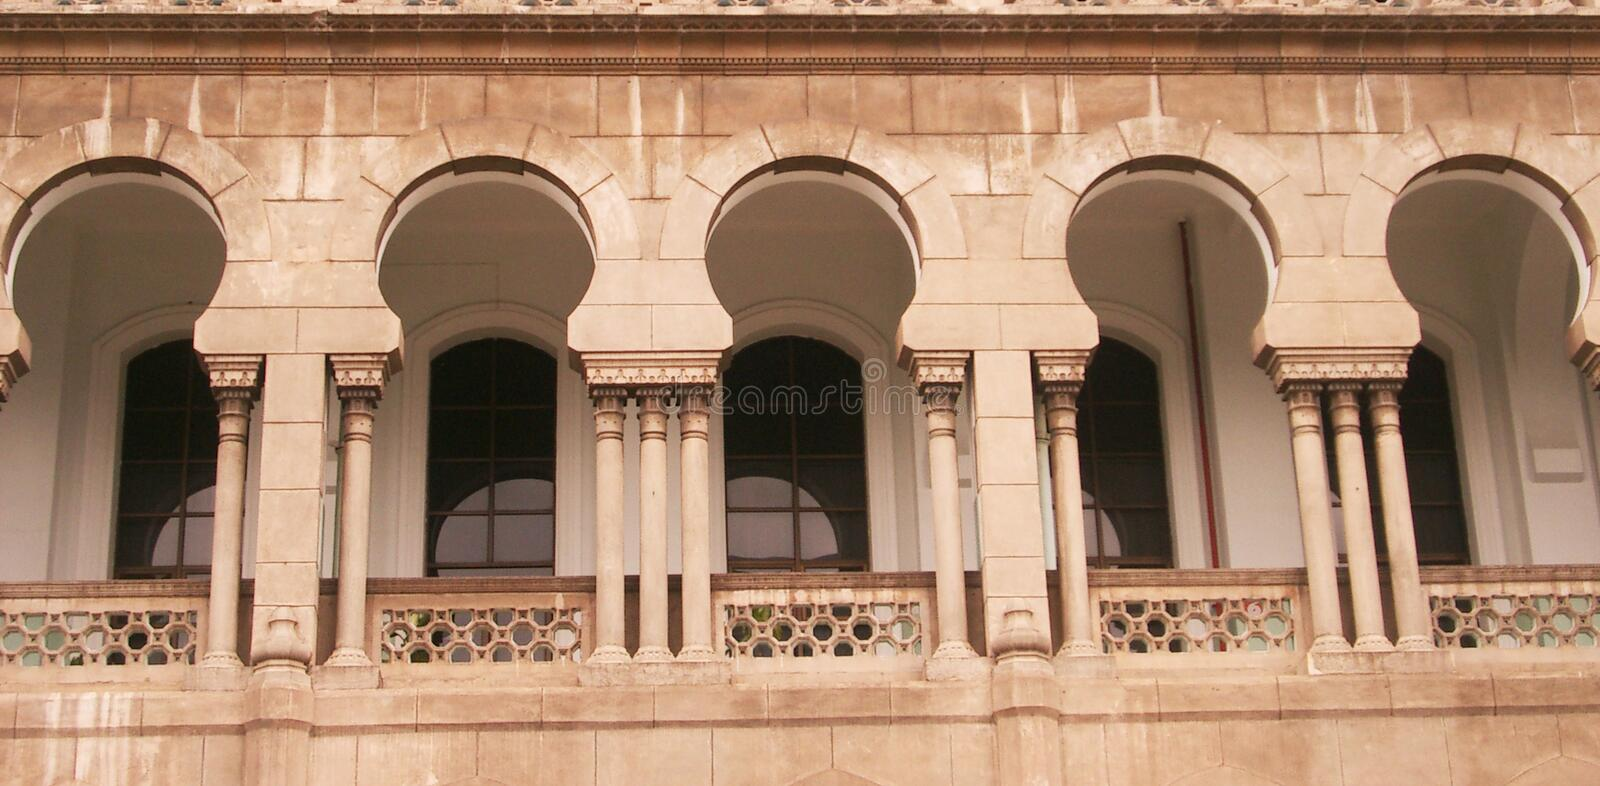 Download Islamic windows stock image. Image of architecture, oriental - 103861